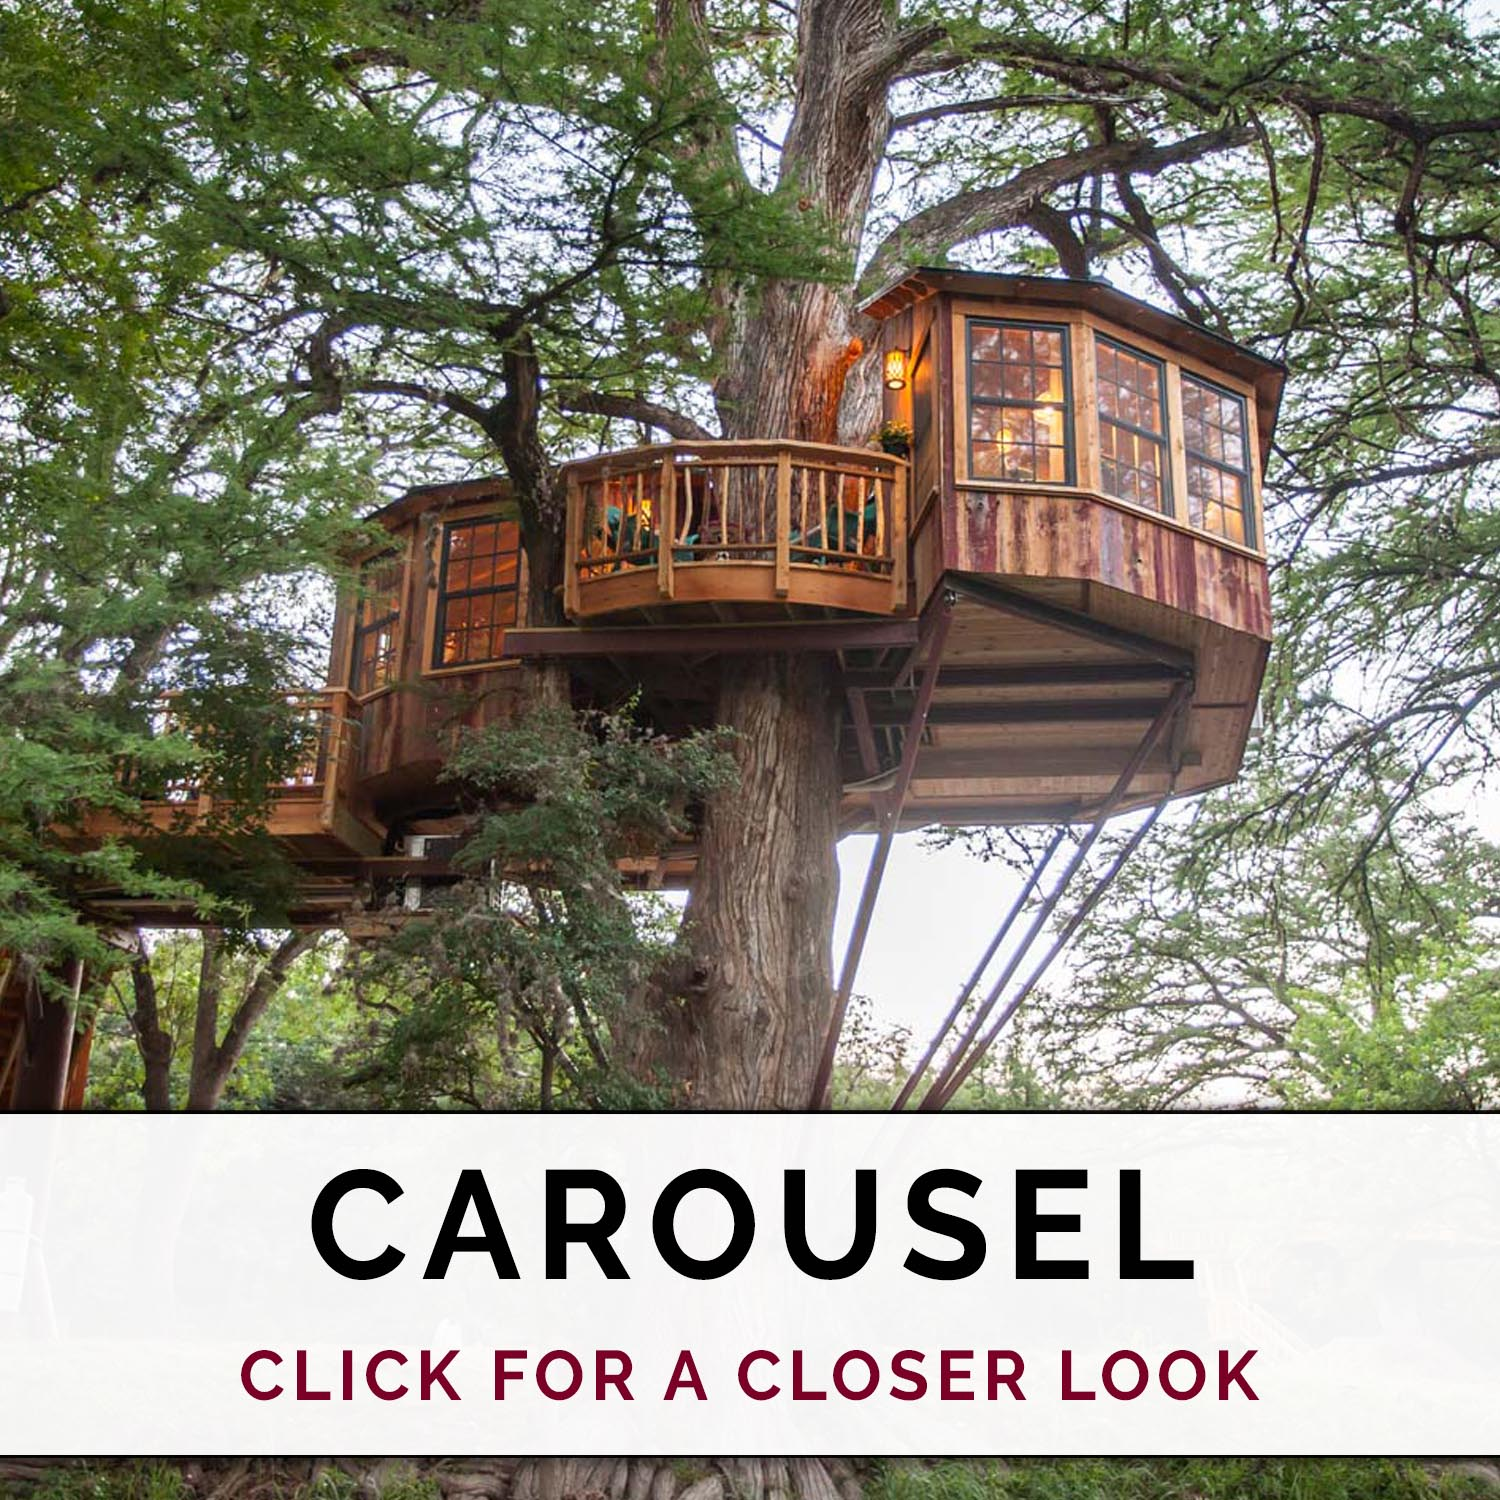 Carousel at Treehouse Utopia